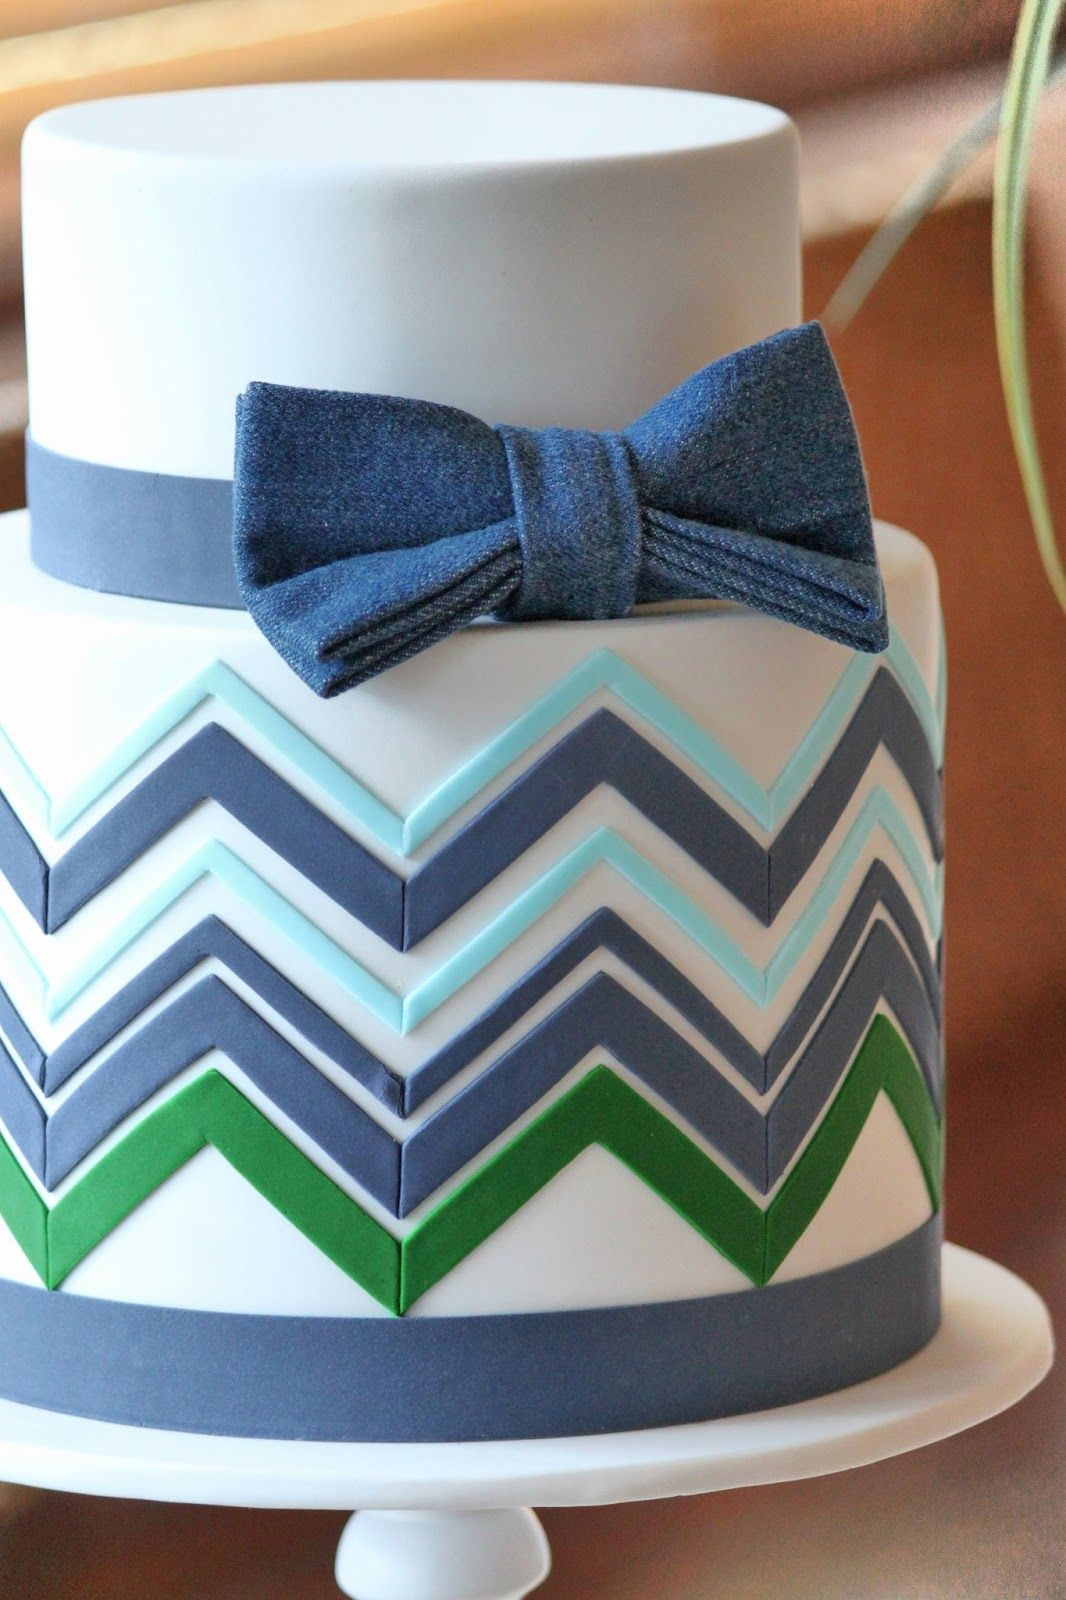 Pin by Amy Frazier on Sweet treats Pinterest Bow tie cake